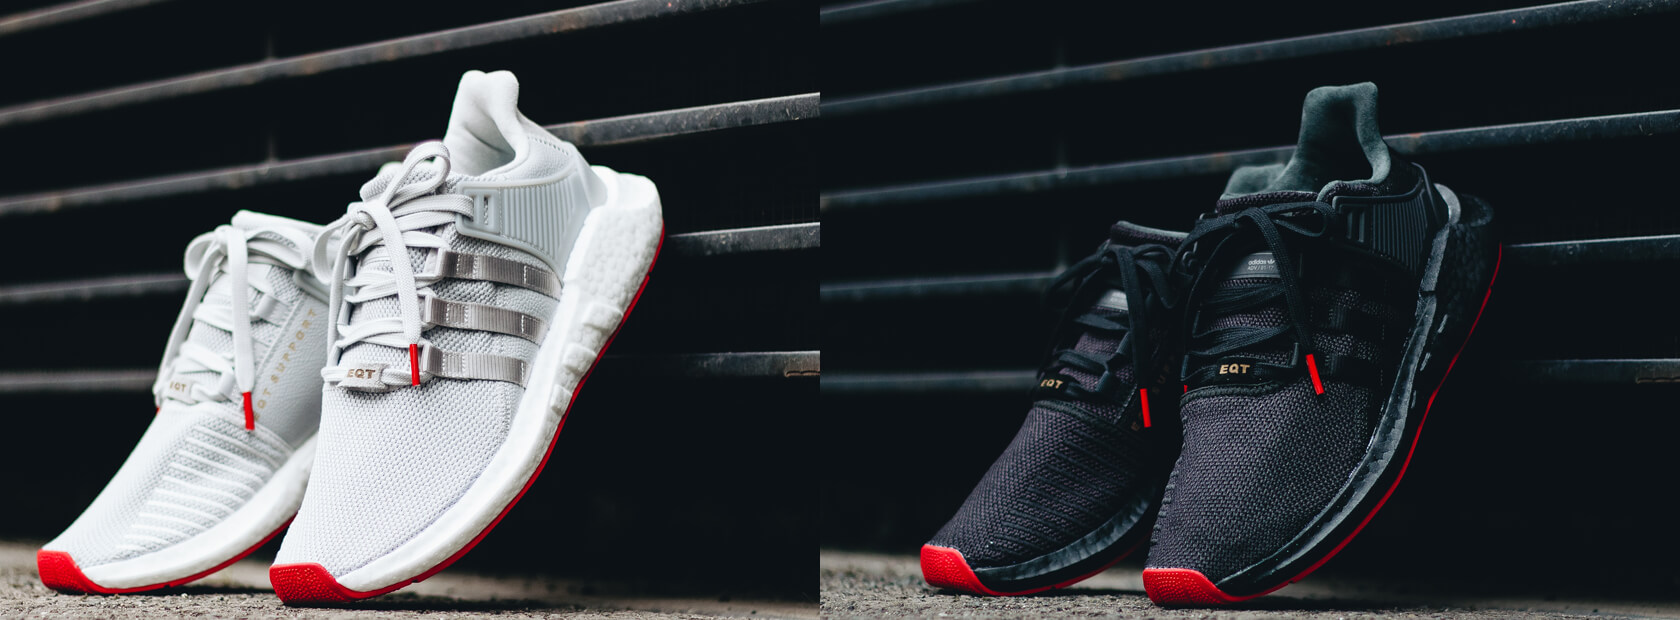 "Adidas EQT Support 93/17 ""Red Carpet Pack"""